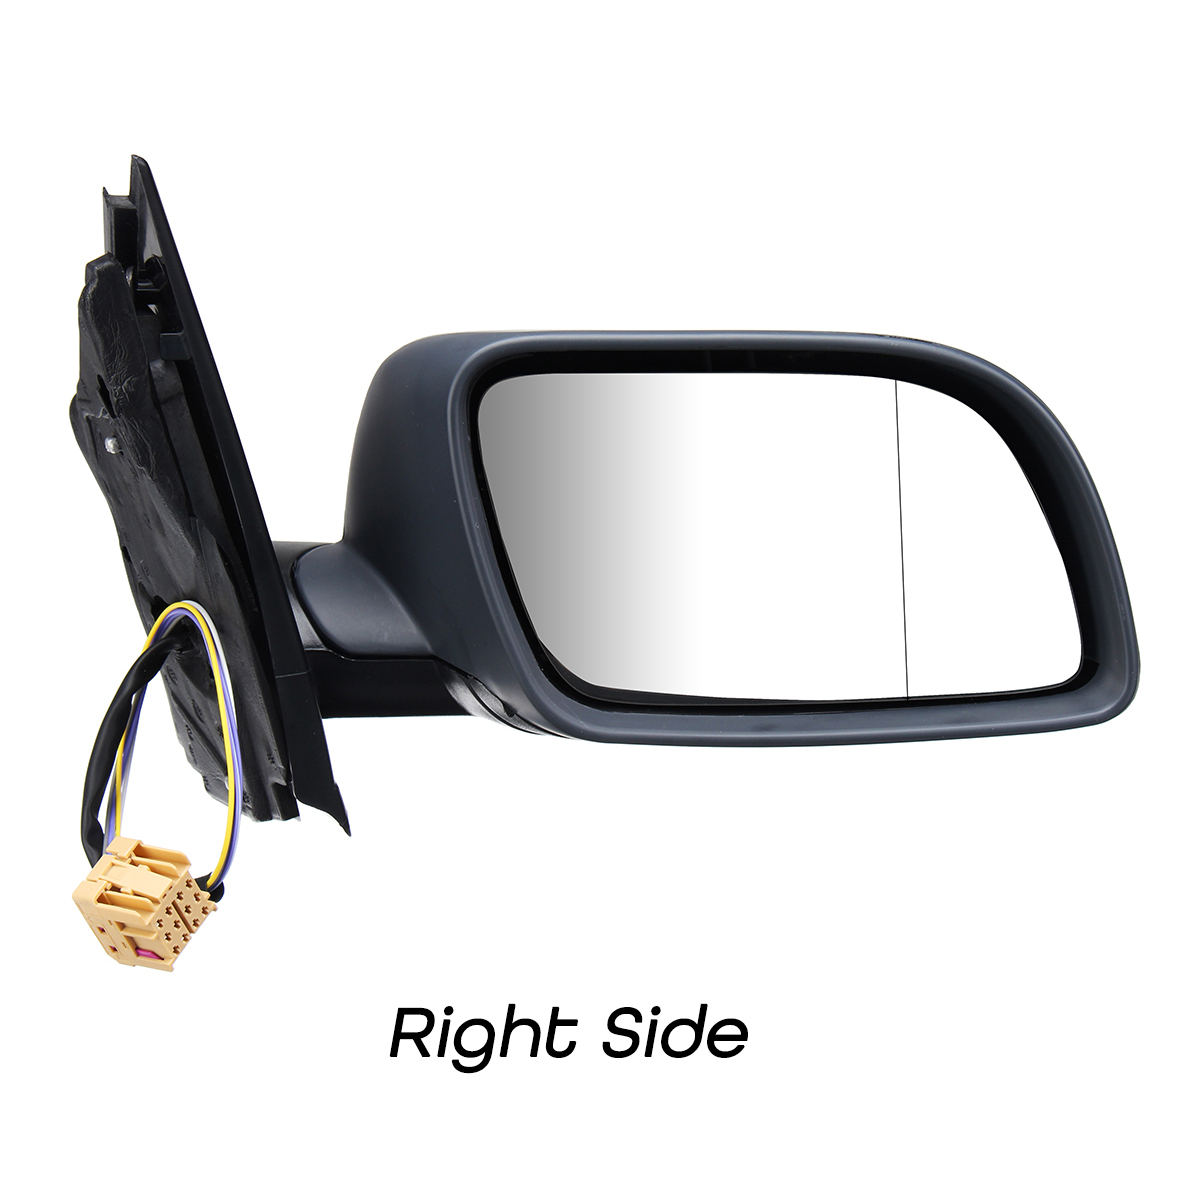 NEW VW POLO MK5 9N 2002-2005 ELECTRIC DOOR WING MIRROR PASSENGER SIDE